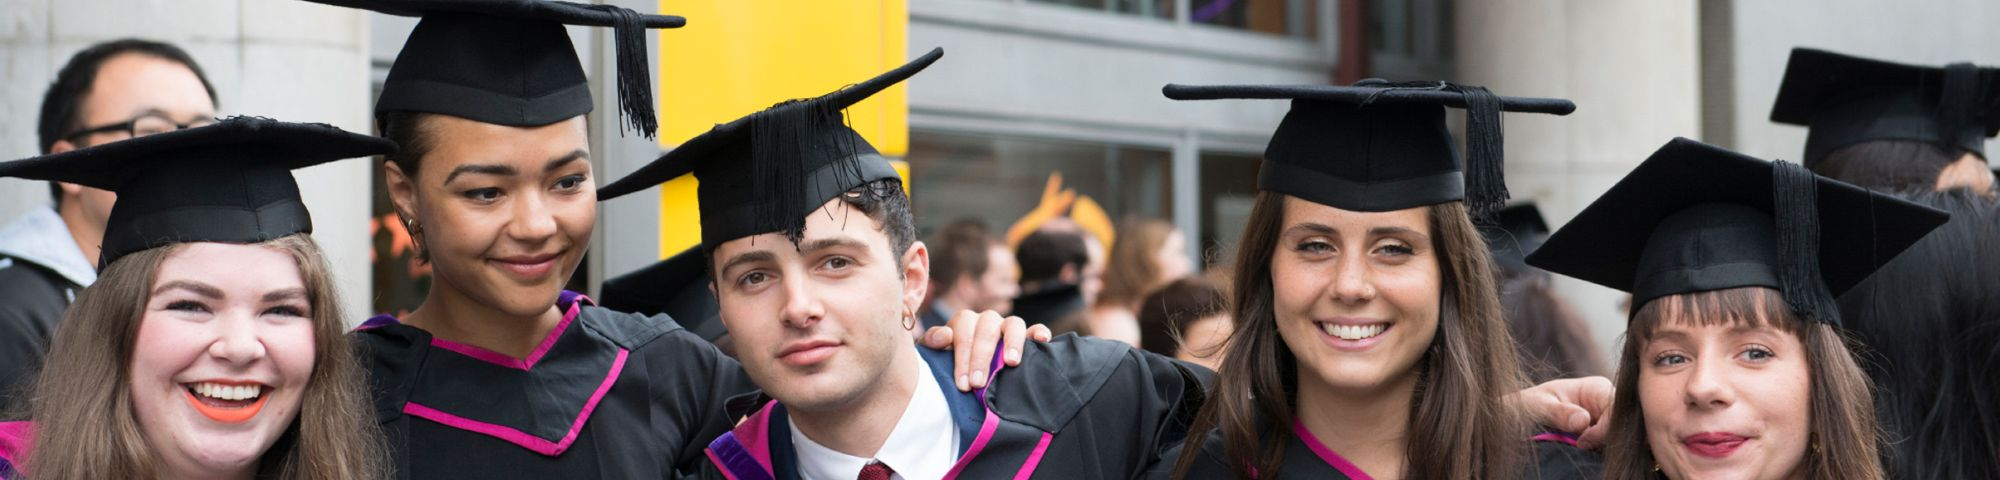 A group of students wearing graduation robes and mortarboard caps after graduating from University of the Arts London UAL